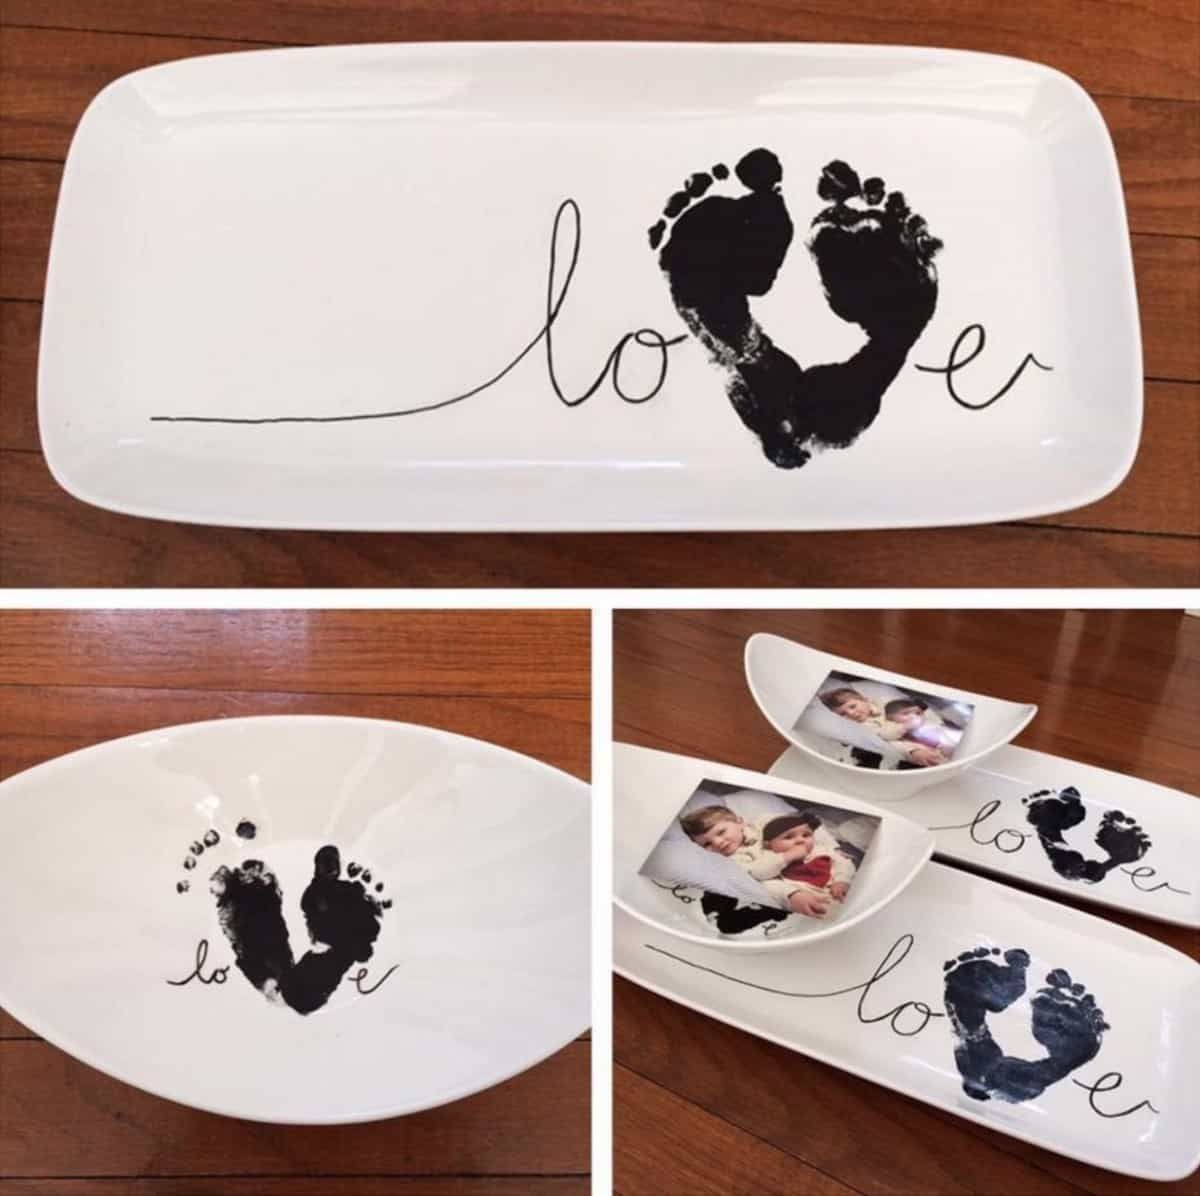 Sweetest Footprint Art Ideas You'll Love